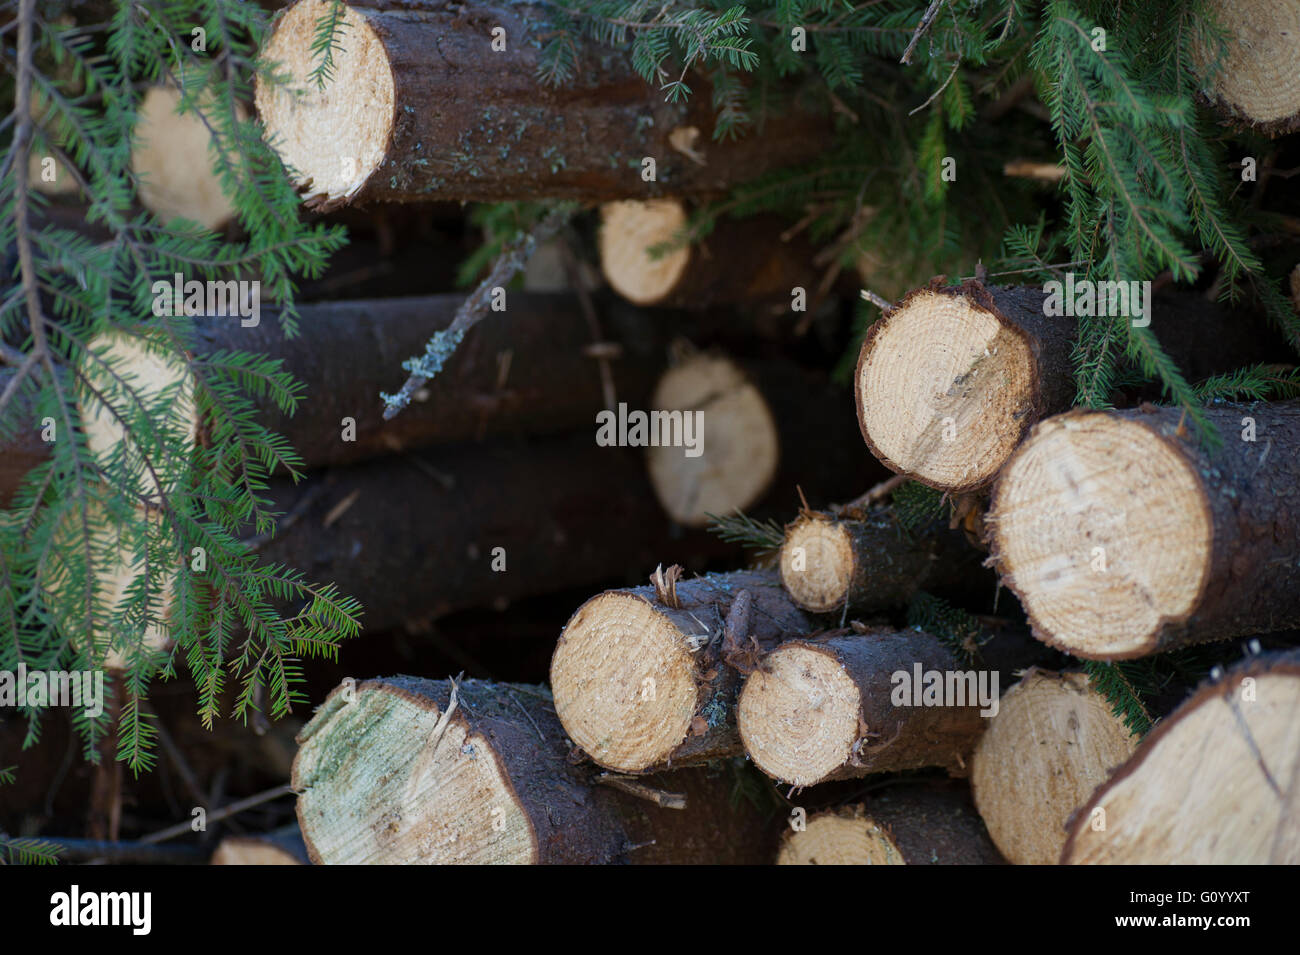 Timber in the forest. - Stock Image